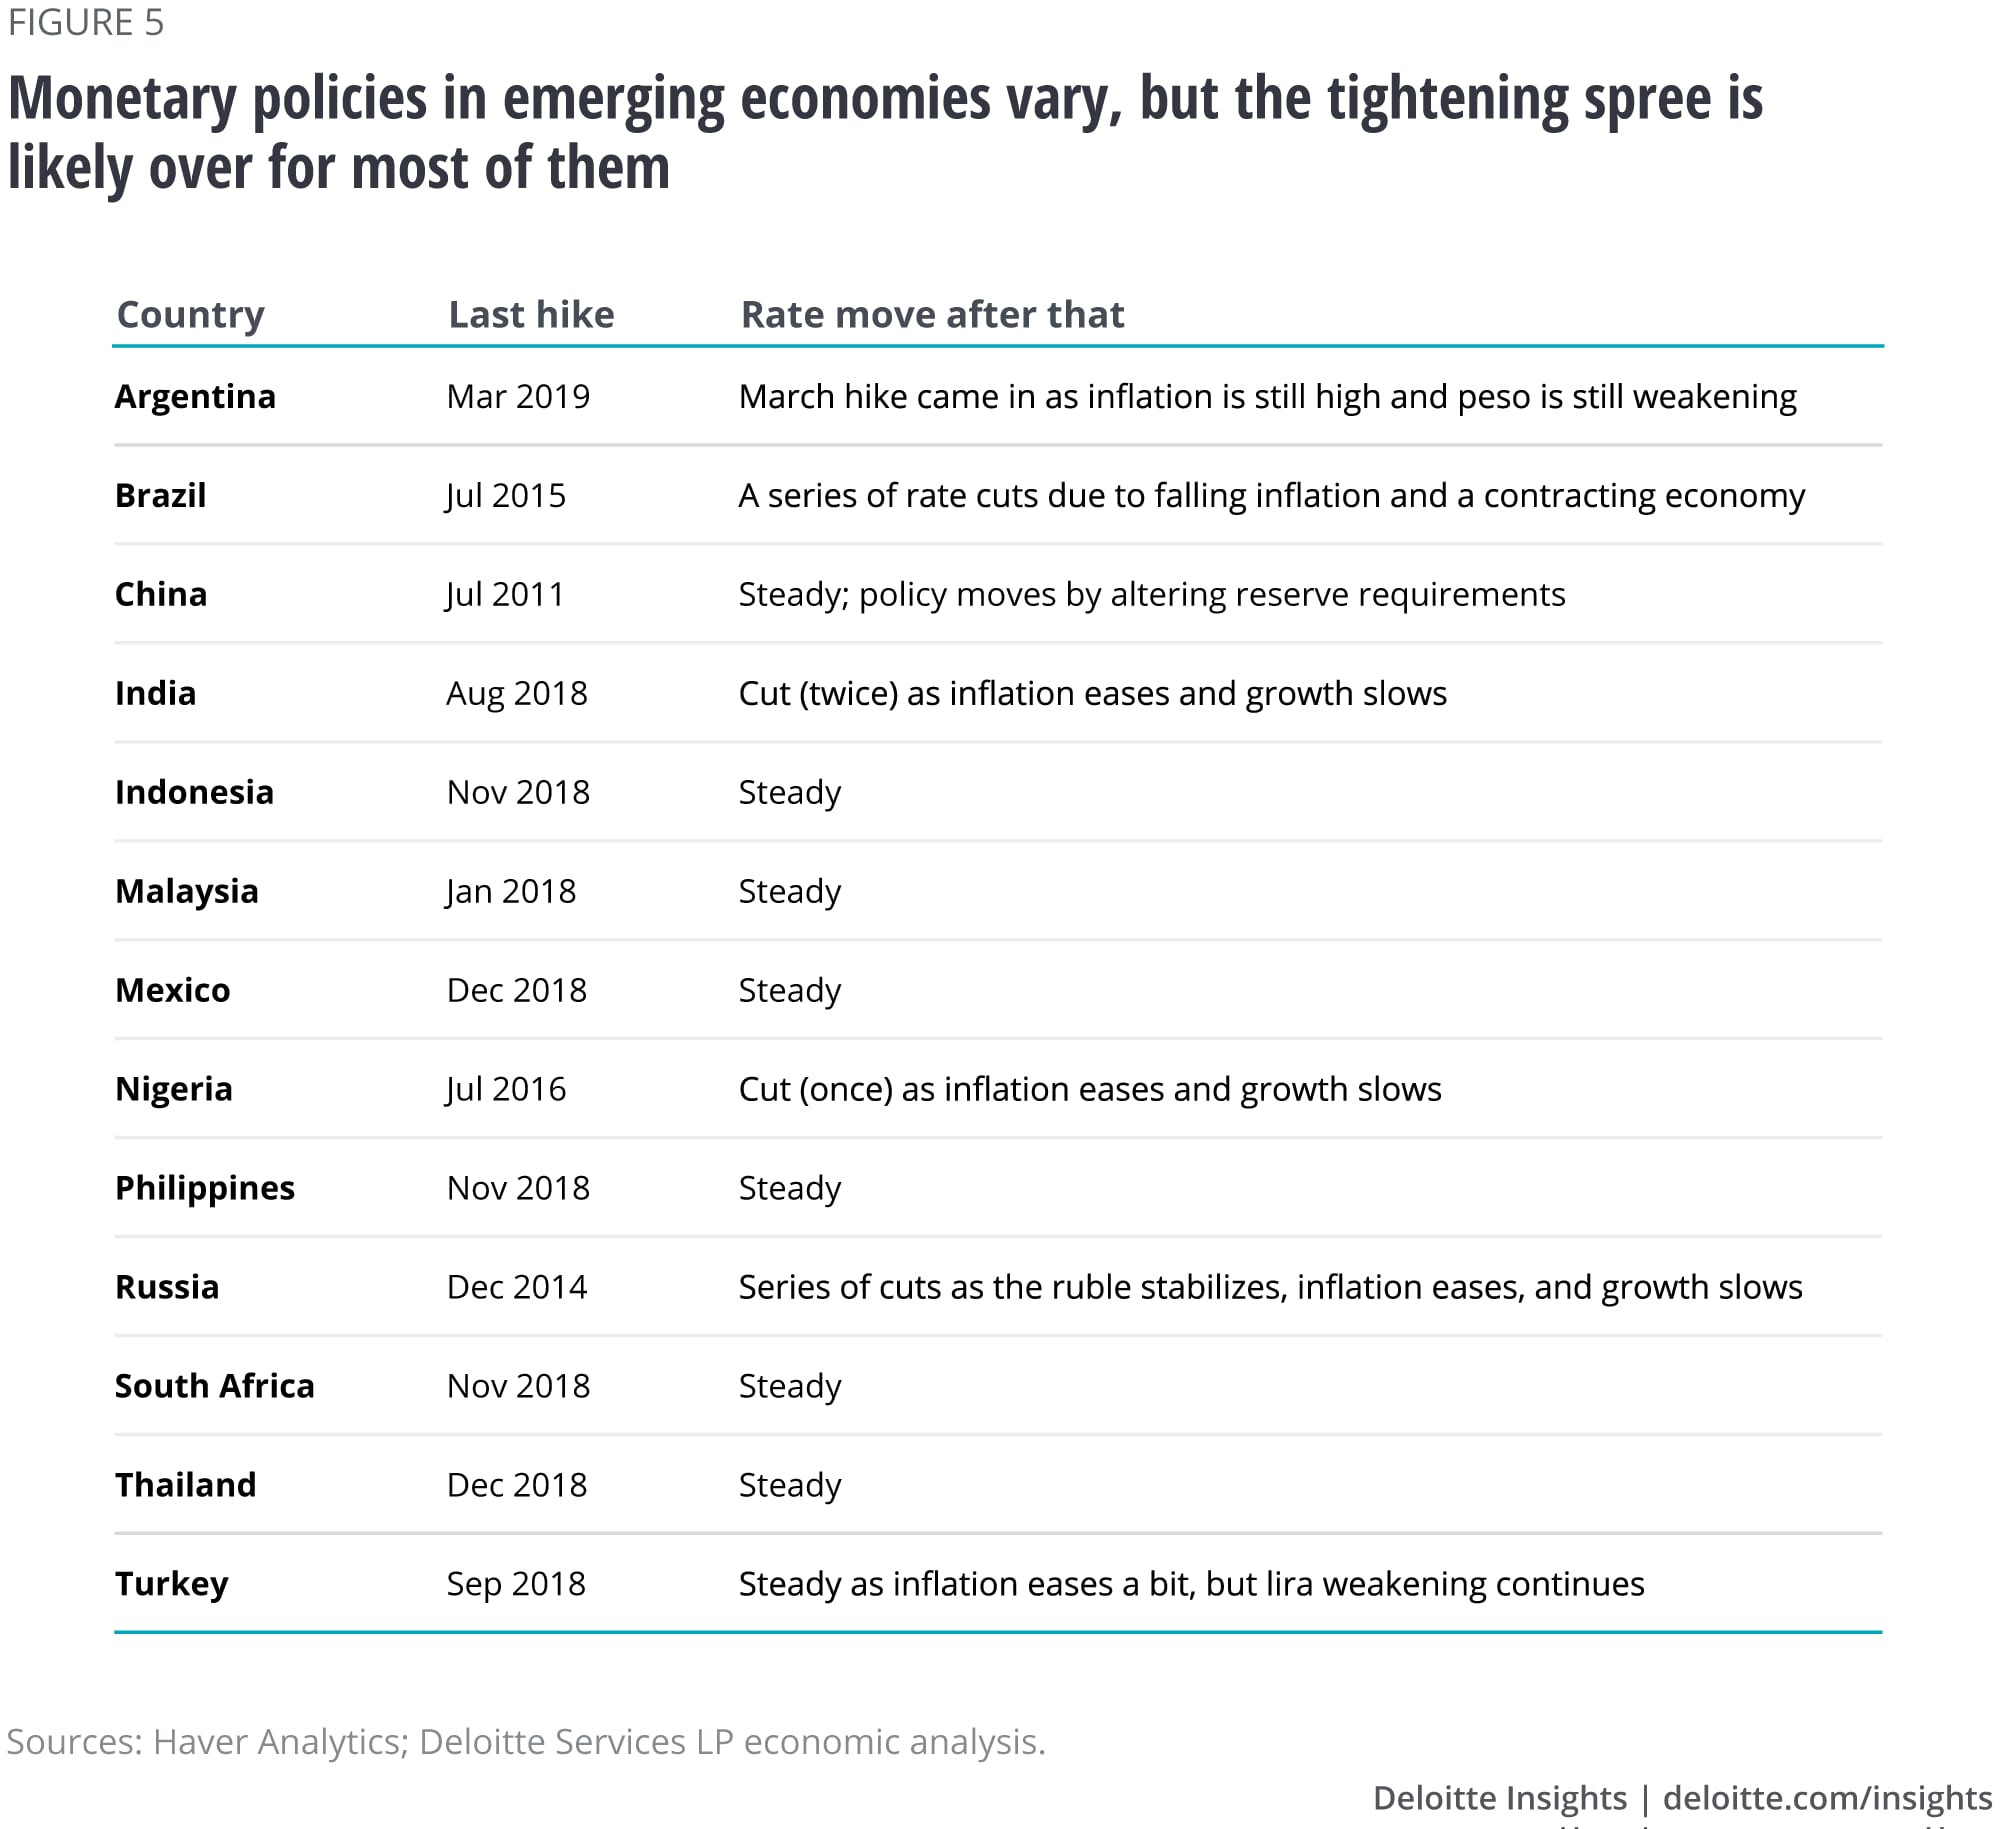 Monetary policy in emerging economies vary, but, the tightening spree is likely over for most of them